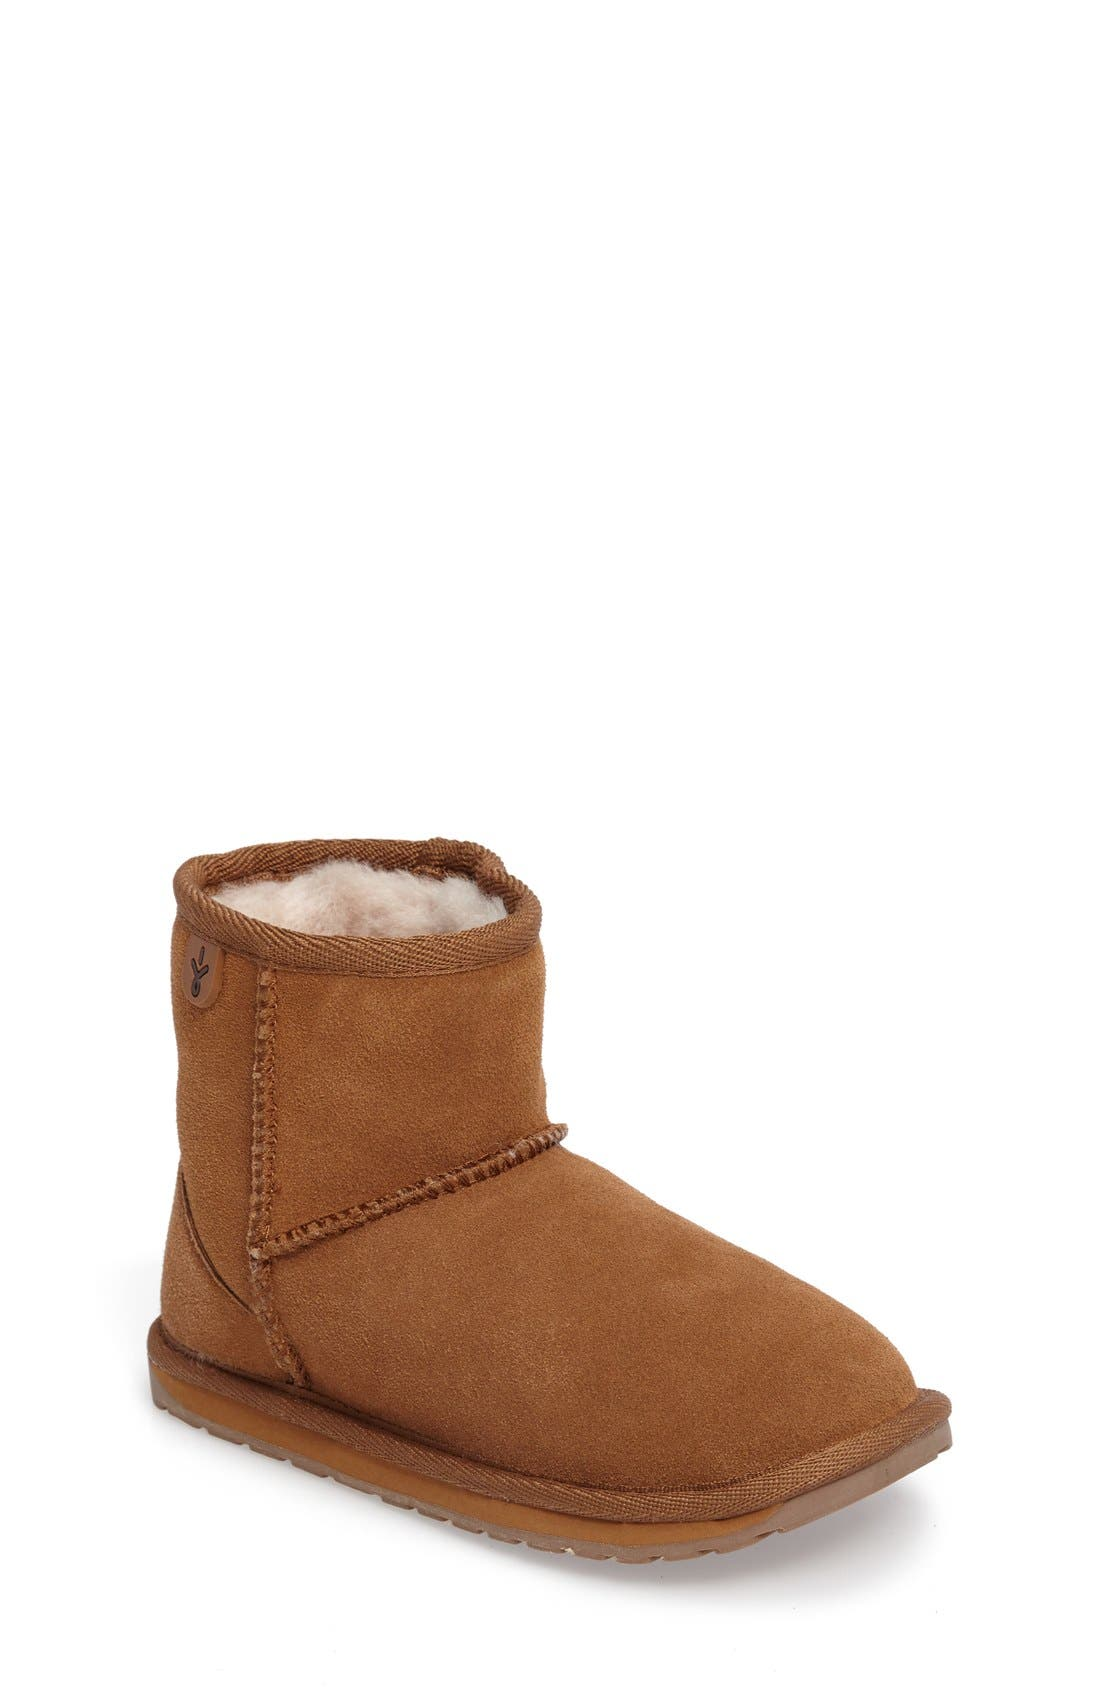 Wallaby Boot,                             Main thumbnail 1, color,                             Chestnut